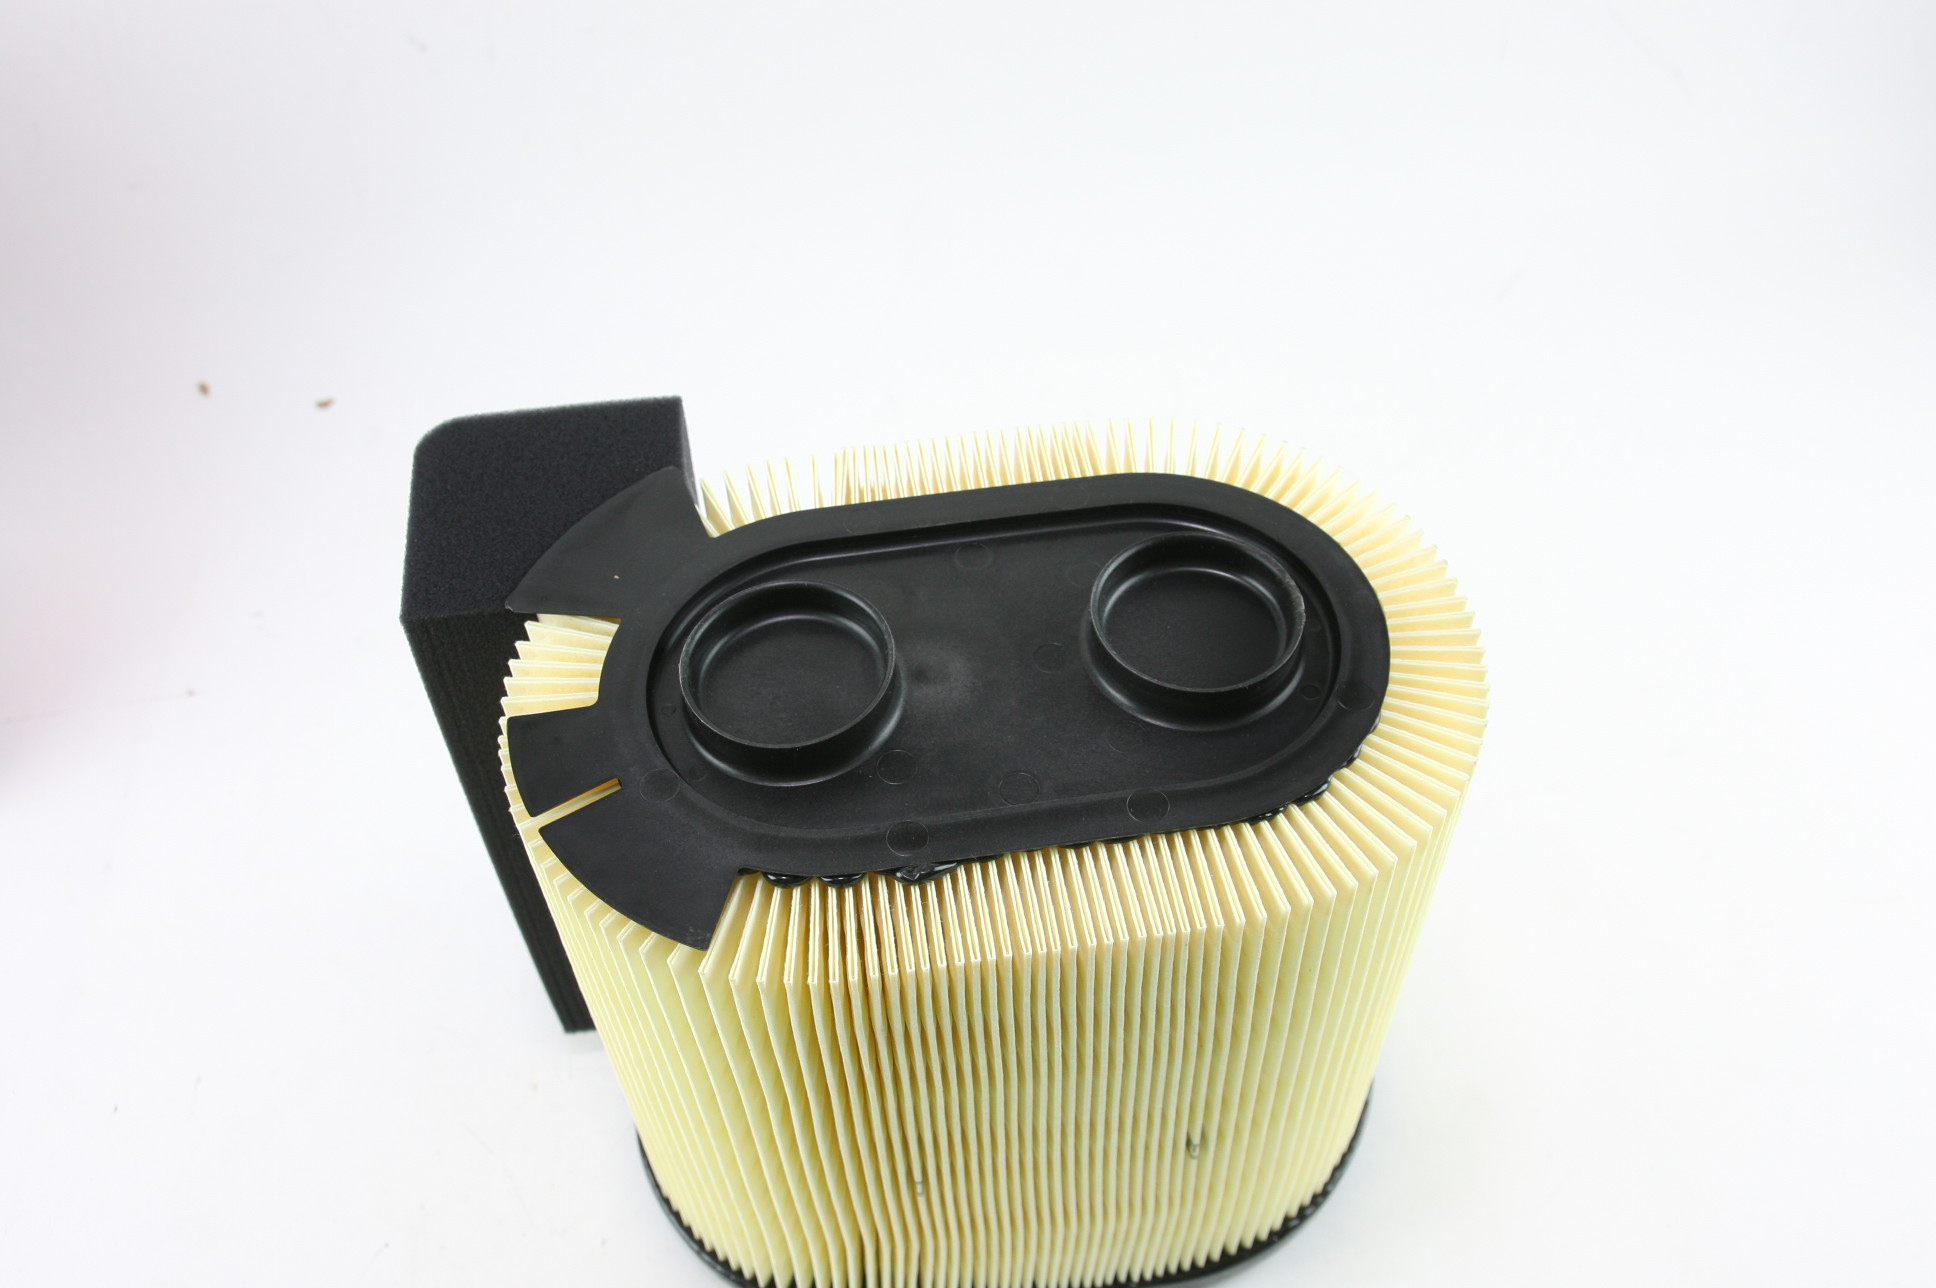 * New OEM 2 Pack Motorcraft FA1927 Ford HC3Z9601A Powerstroke Diesel Air Filter - image 4